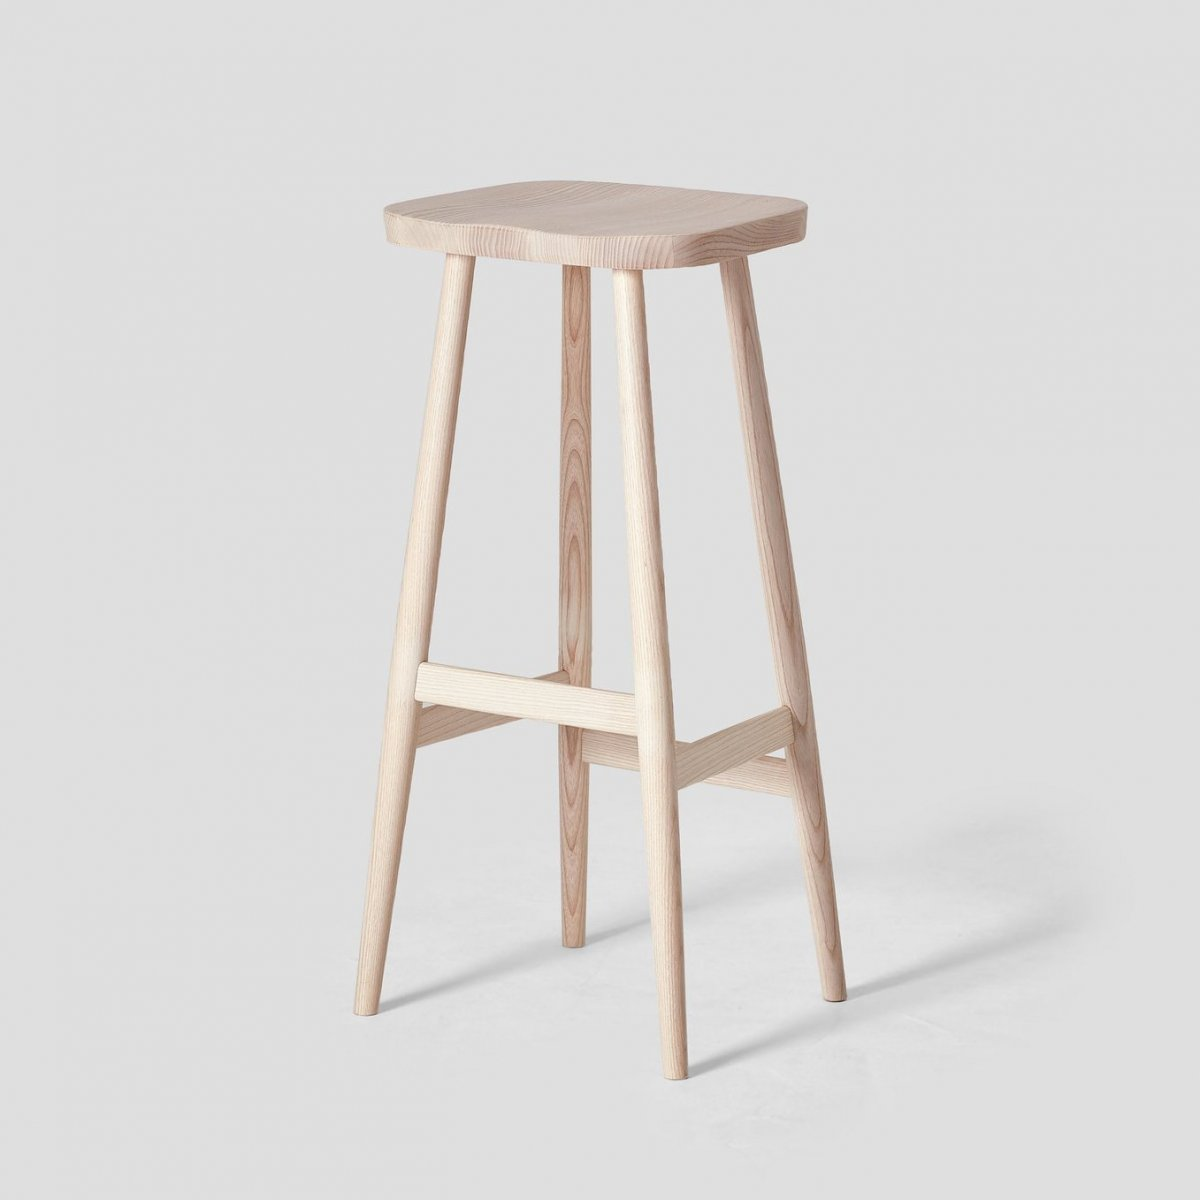 Bird Stool, natural.